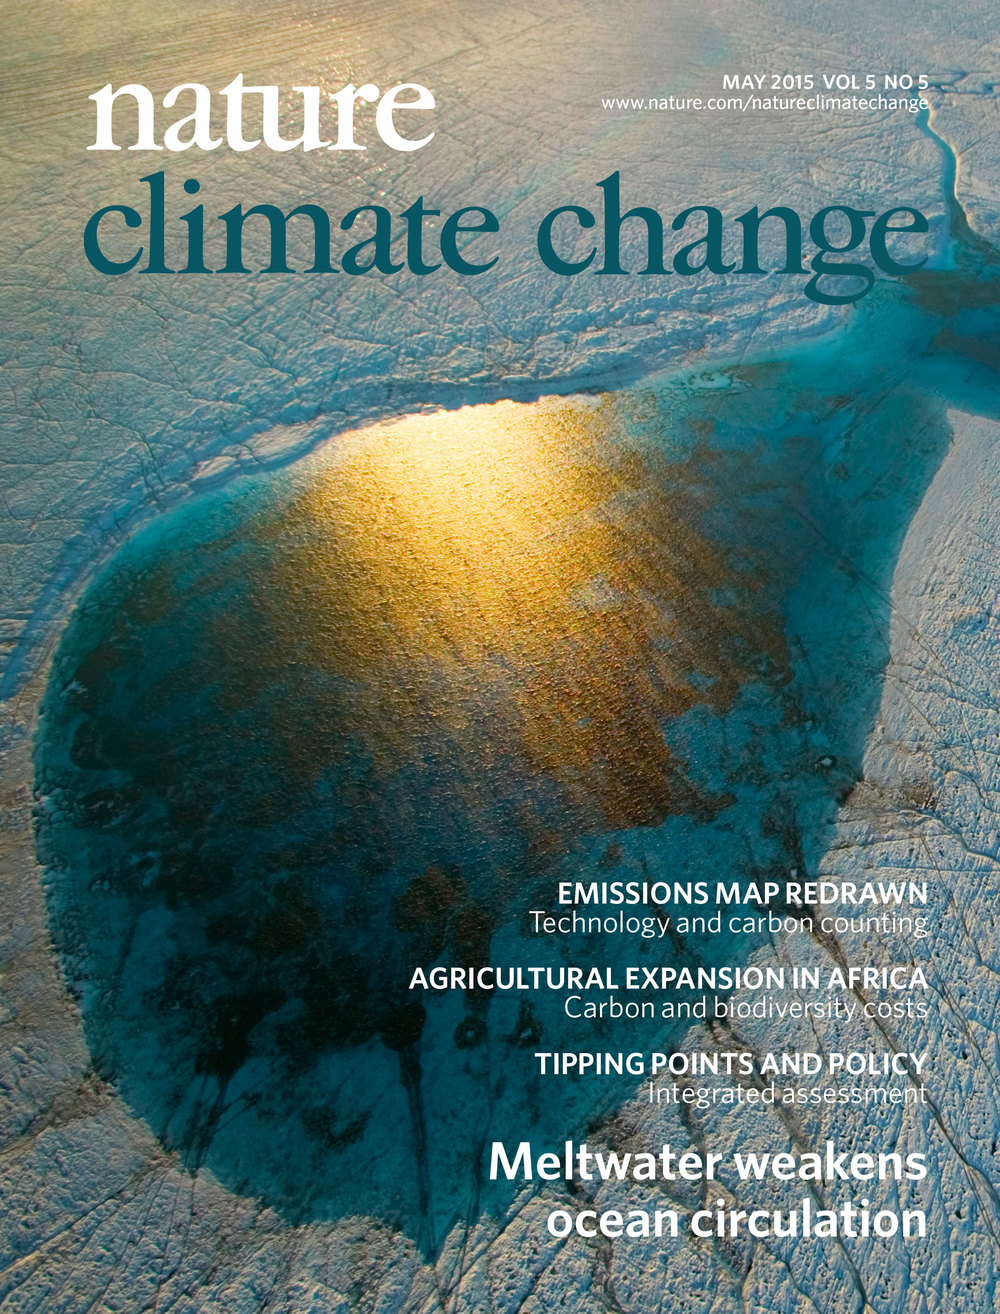 nclimate_cover_MAY15-option2.jpg